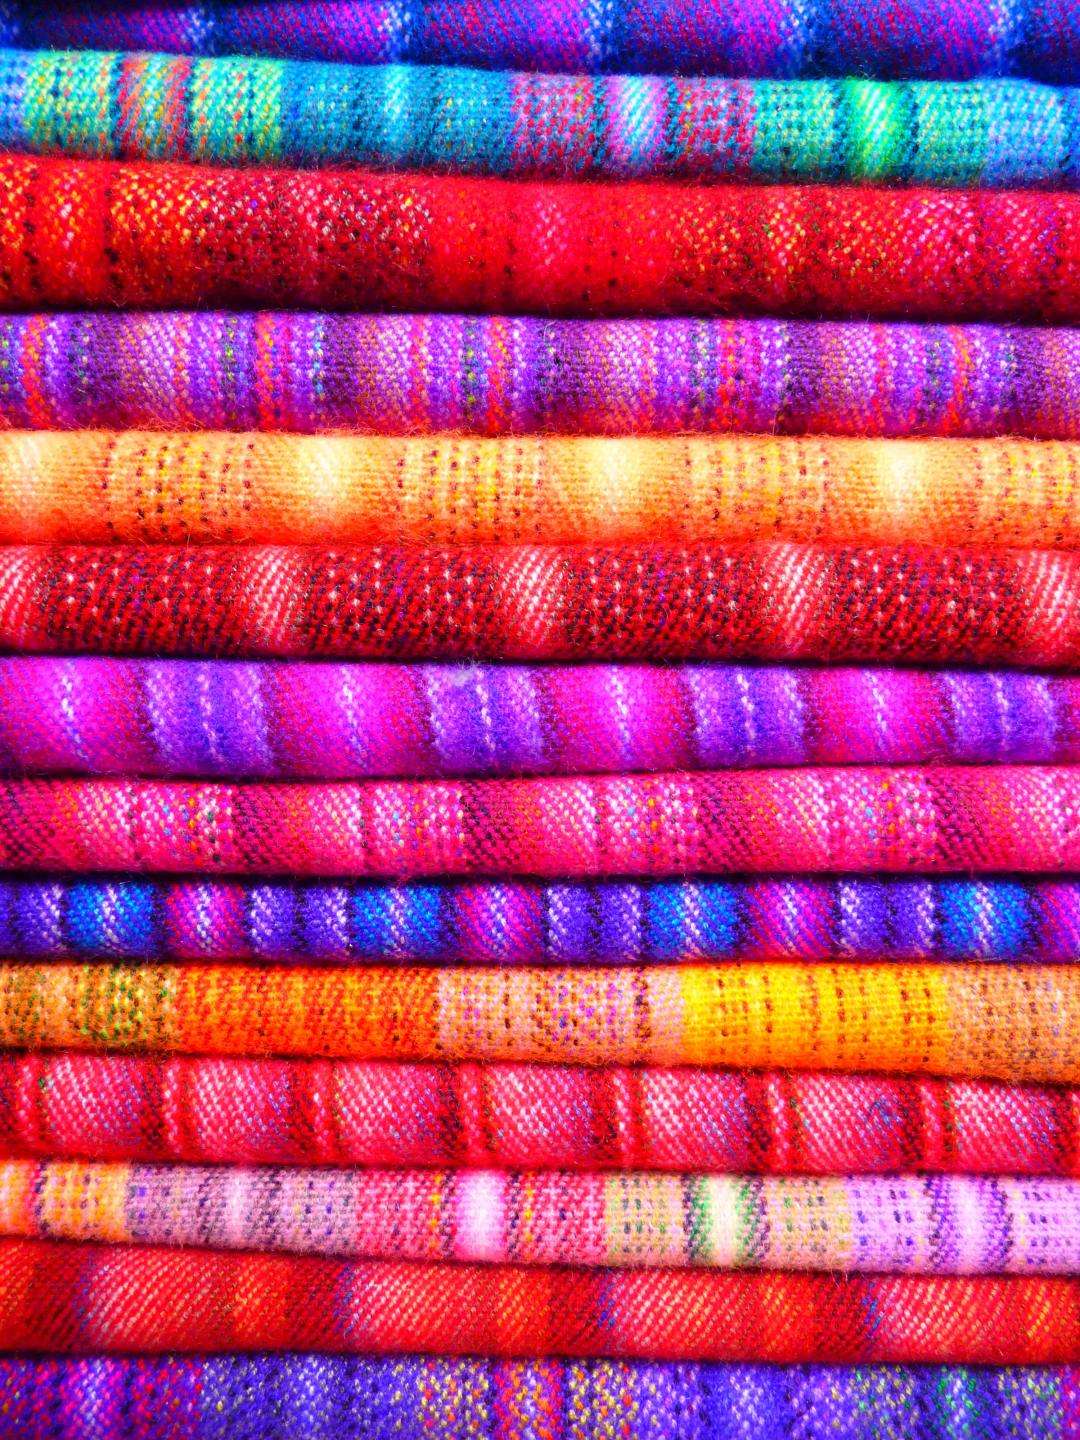 pink-and-blue-textile-near-yellow-textile-86757